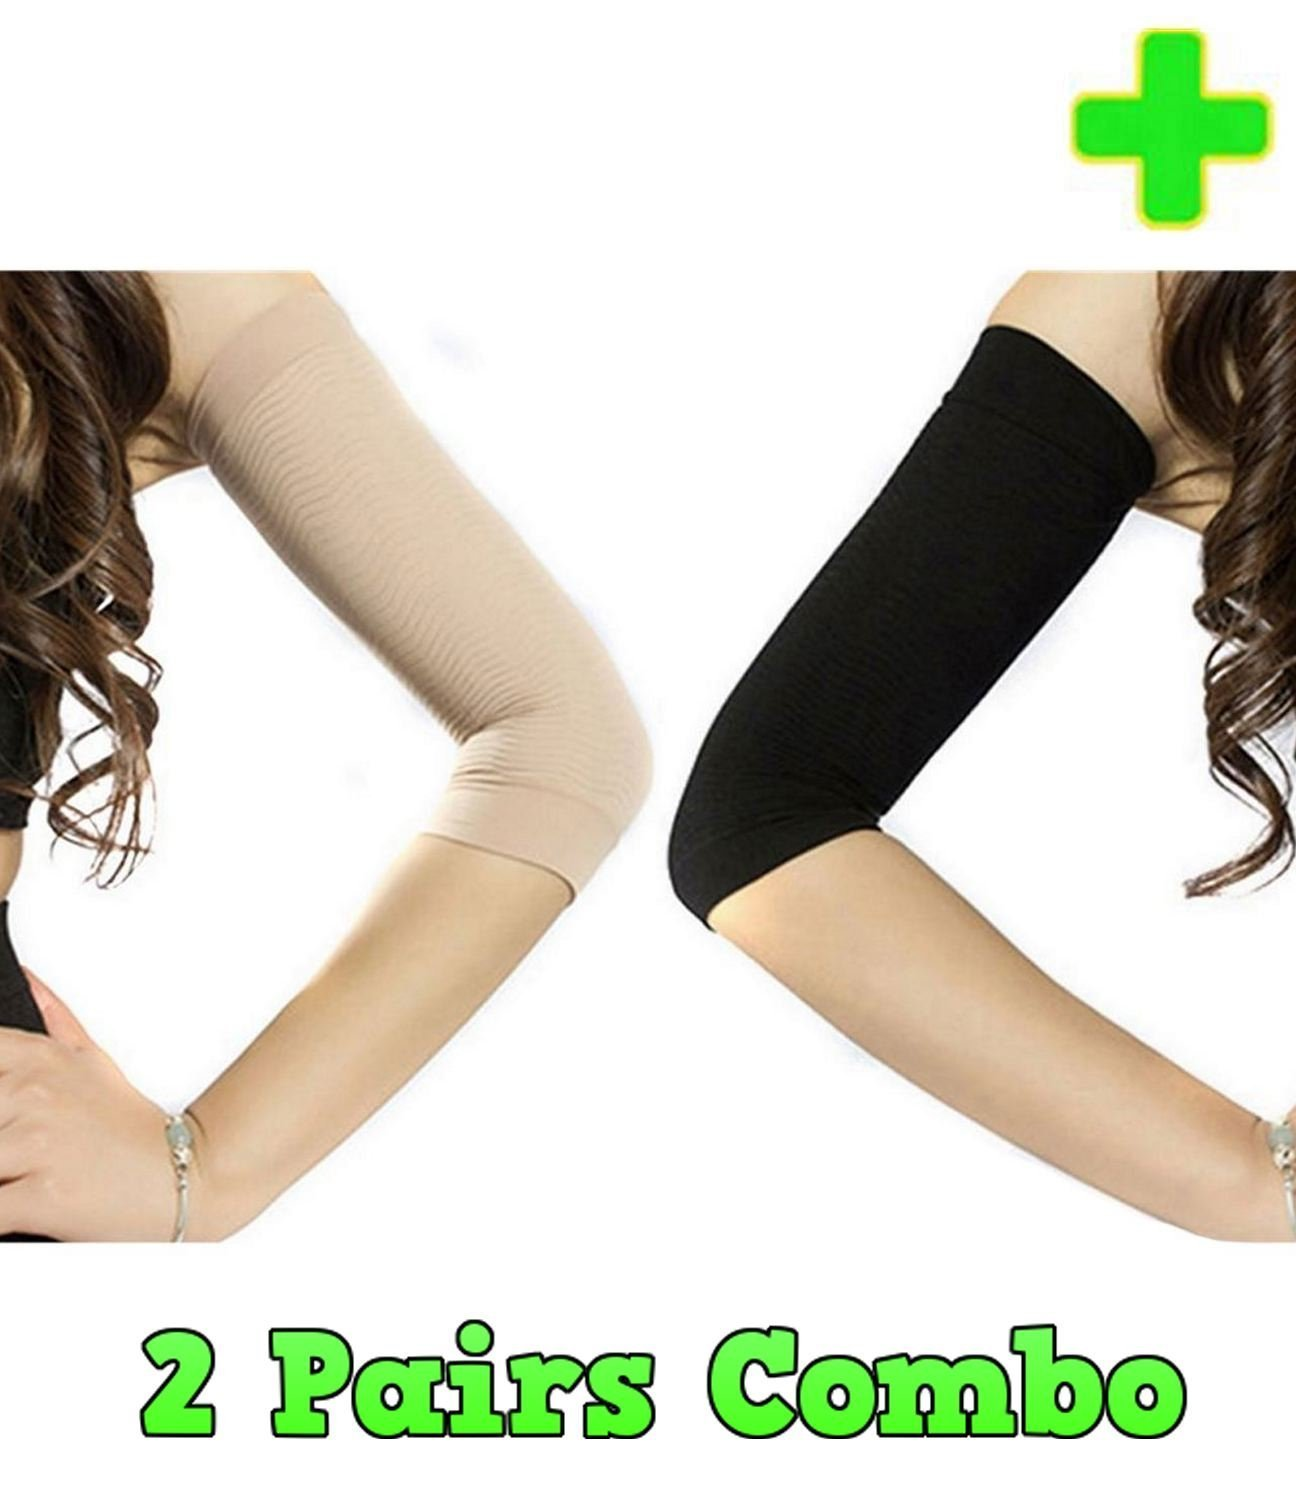 c8366f8a5d Get Quotations · HealthyNees 2 Pairs Combo Slimming Compression Arm Shaper  Helps Tone Shape Upper Arms Sleeve